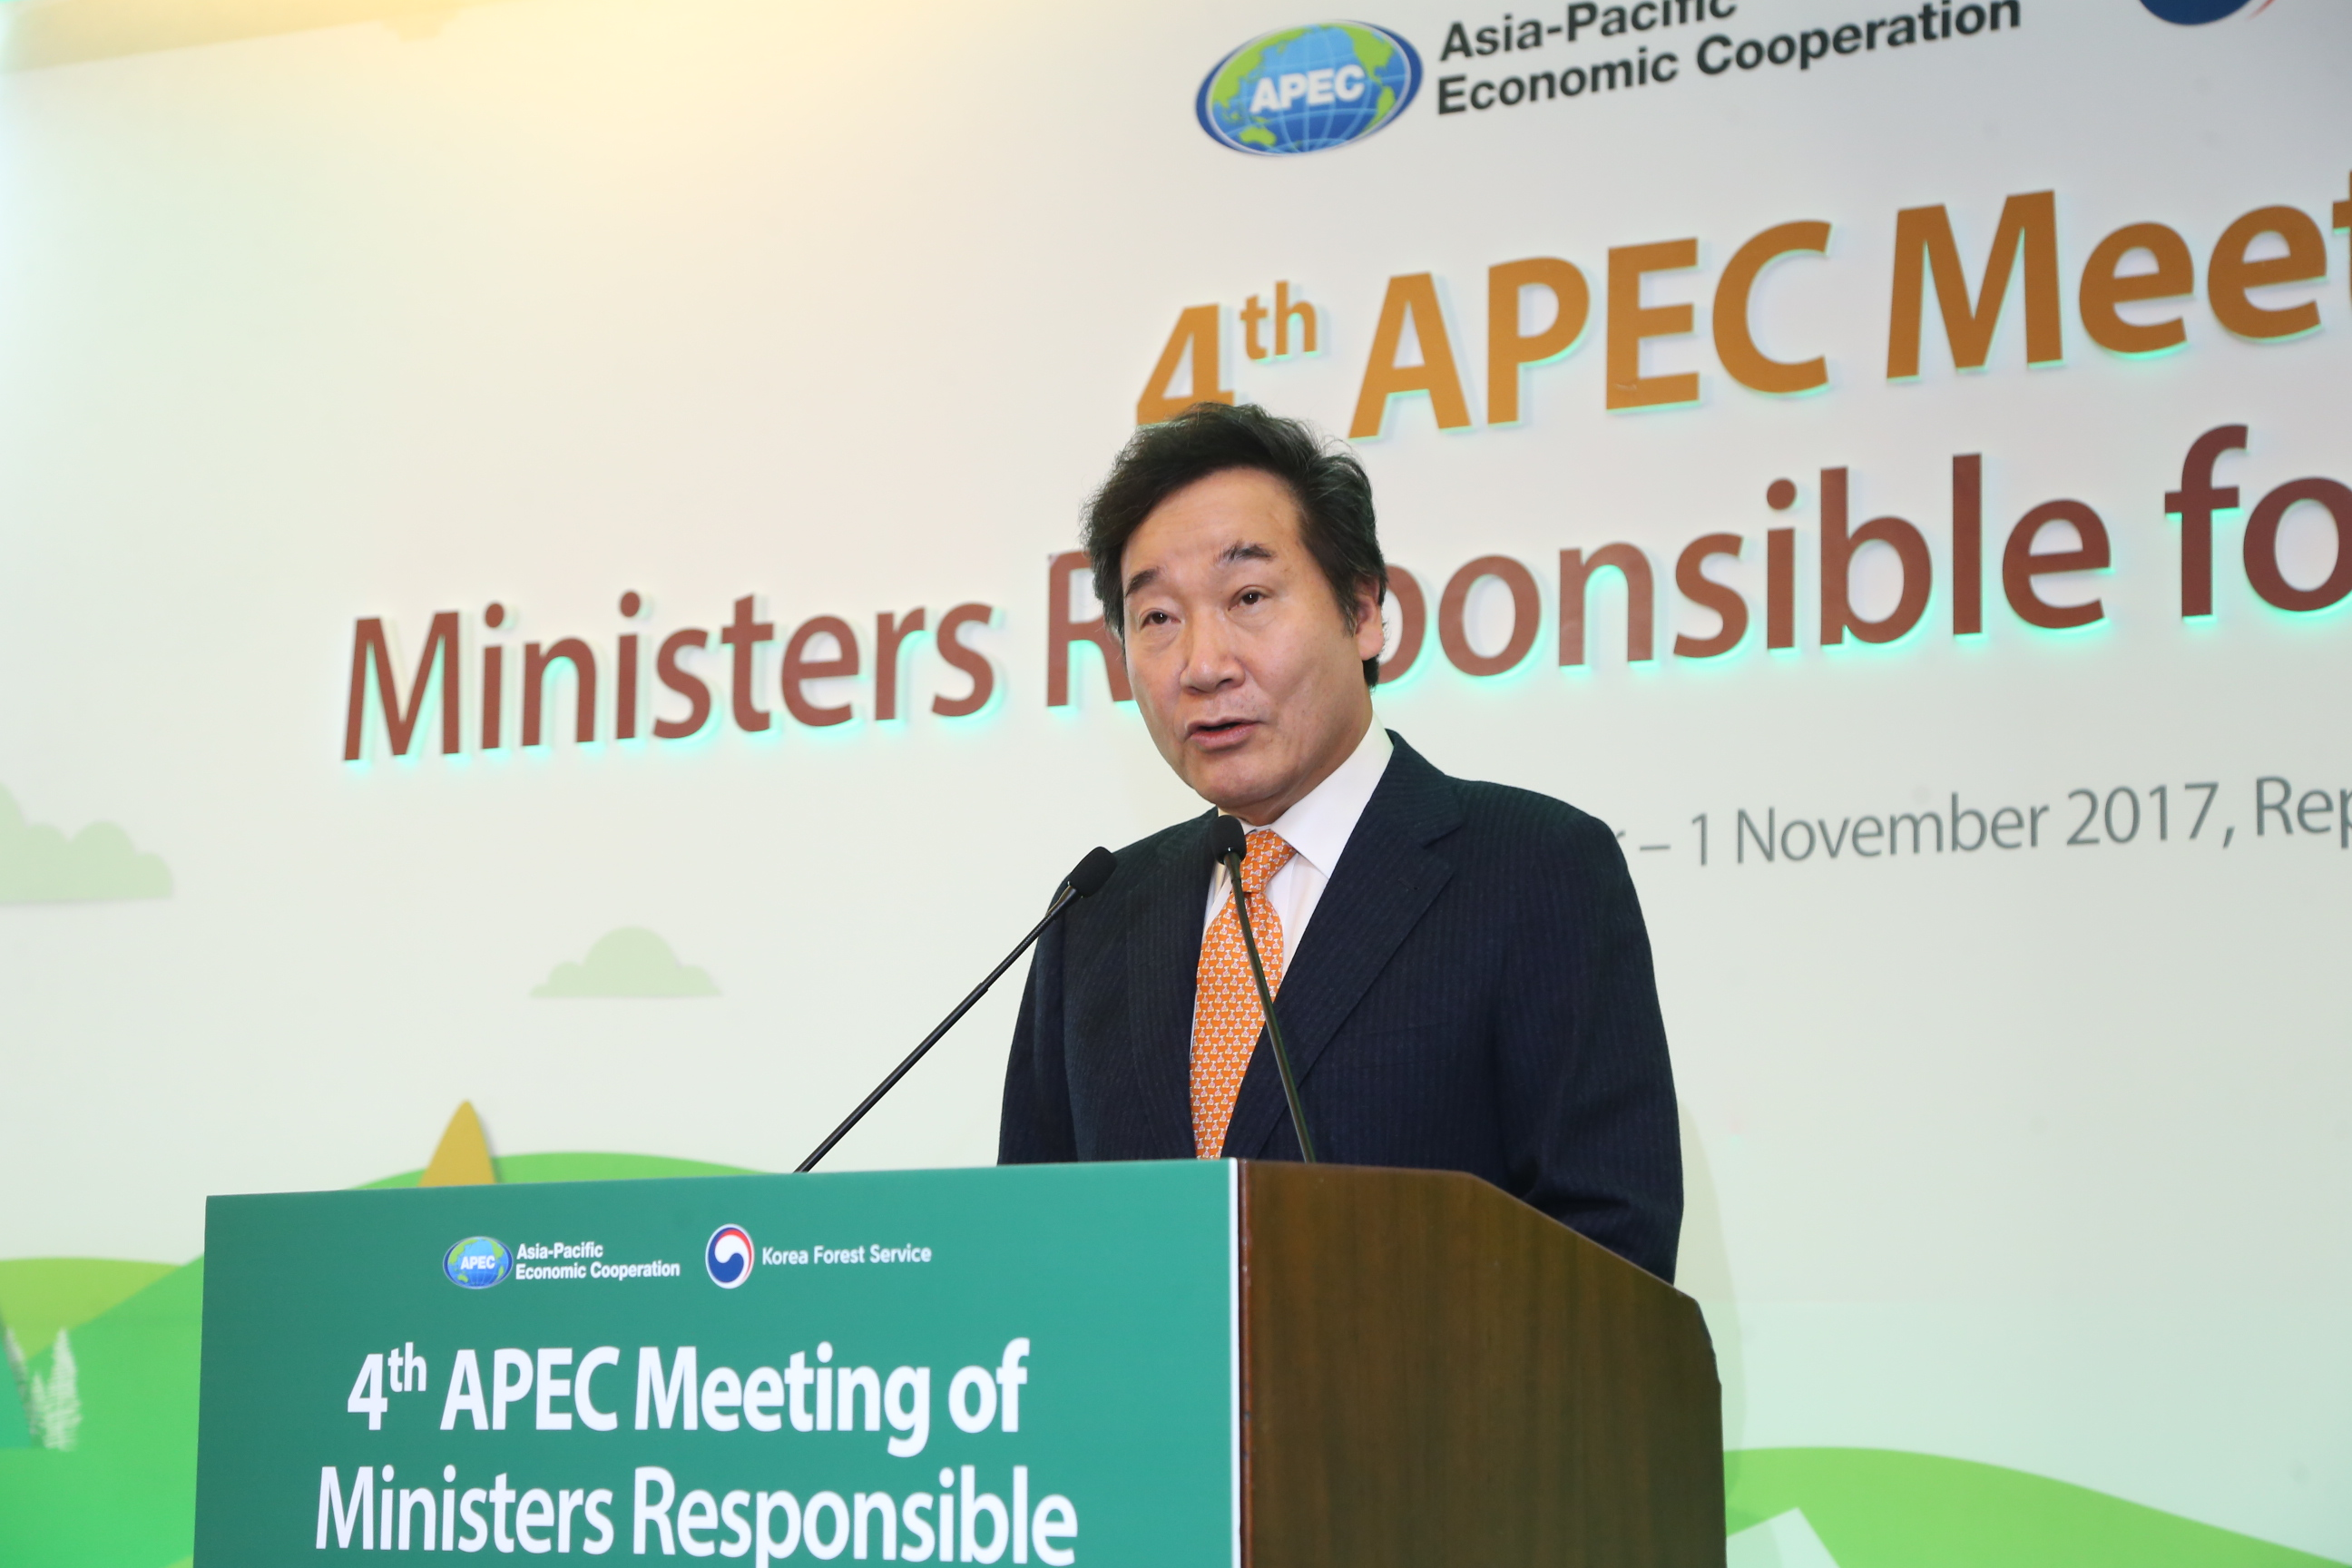 APEC Meeting of Ministers Responsible for Forestry image